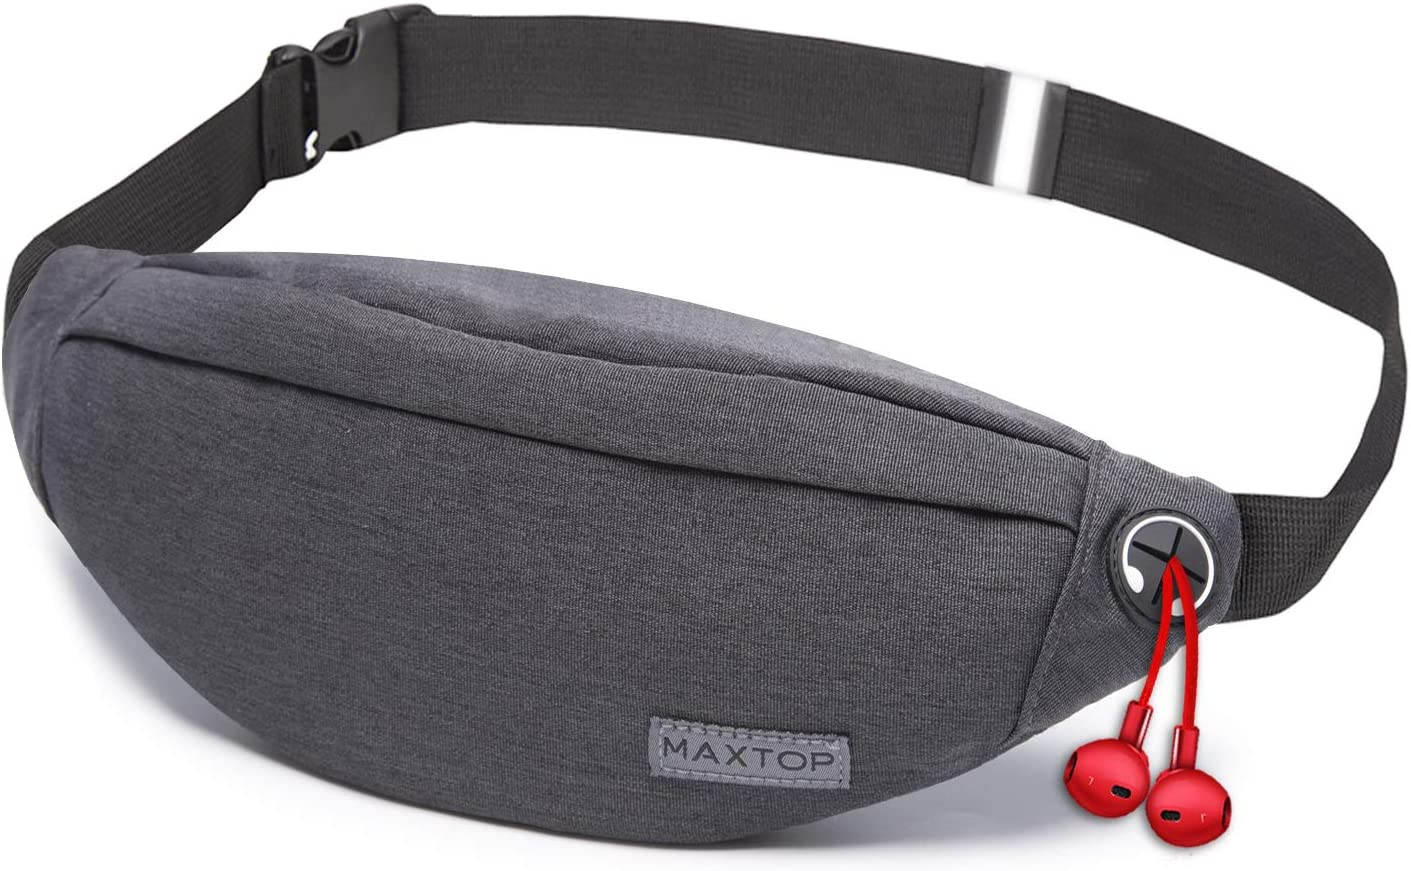 BLACK MAXTOP Fanny Pack for Men Women Waist Pack Bag with Headphone Jack and 3-Zipper Pockets Adjustable Straps